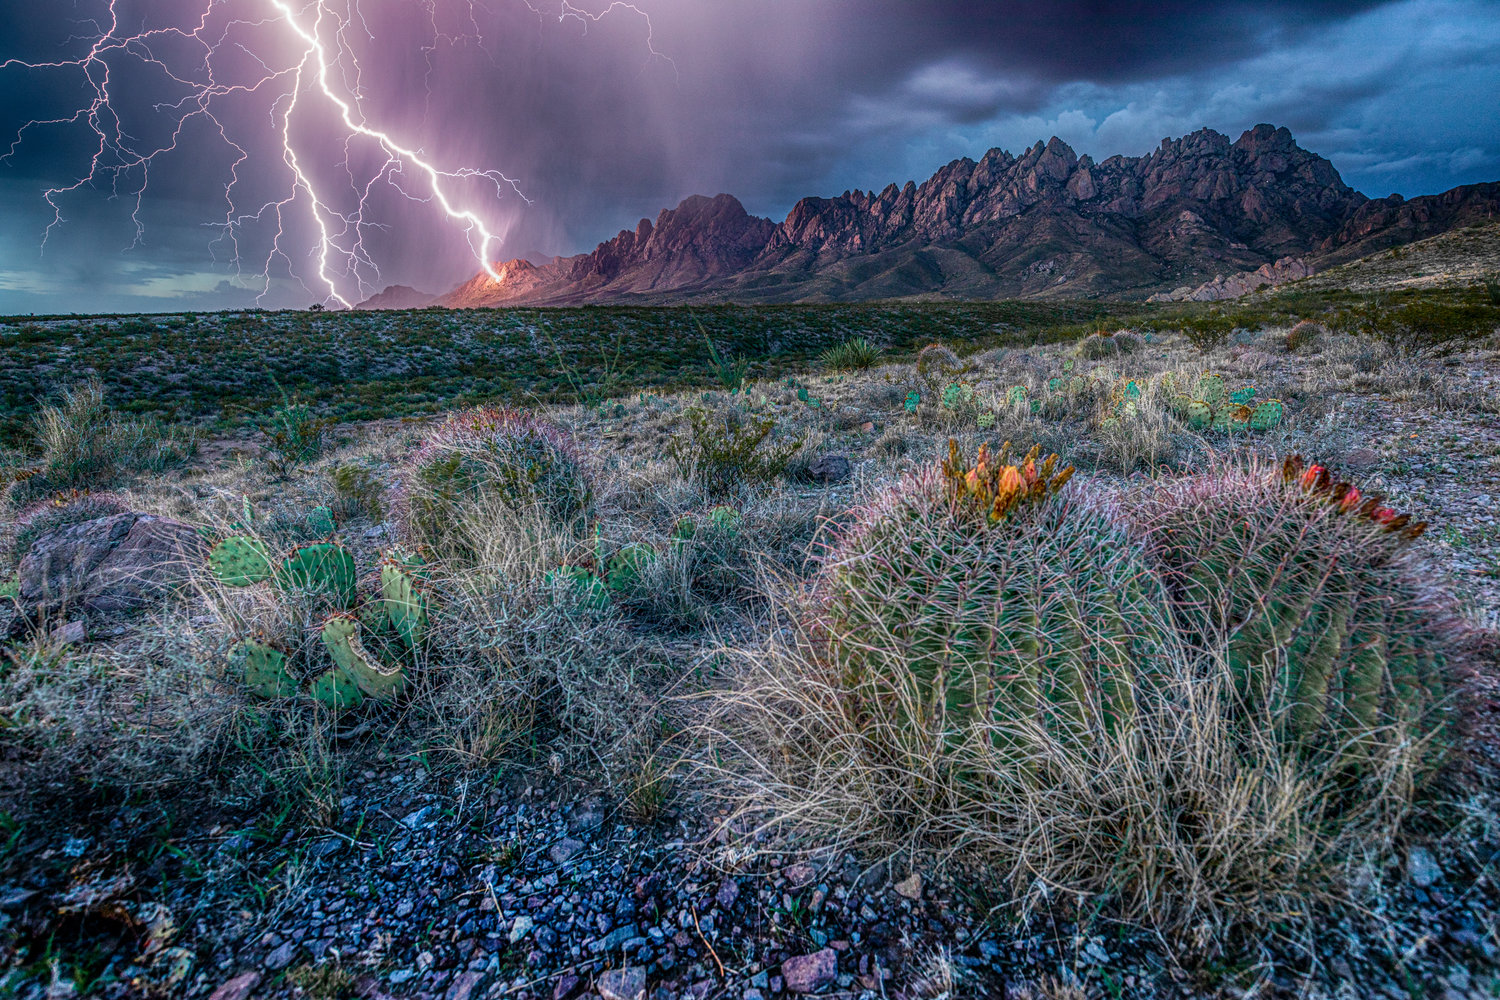 Organ Mountains and surrounding desert by Las Cruces photographer David Turning